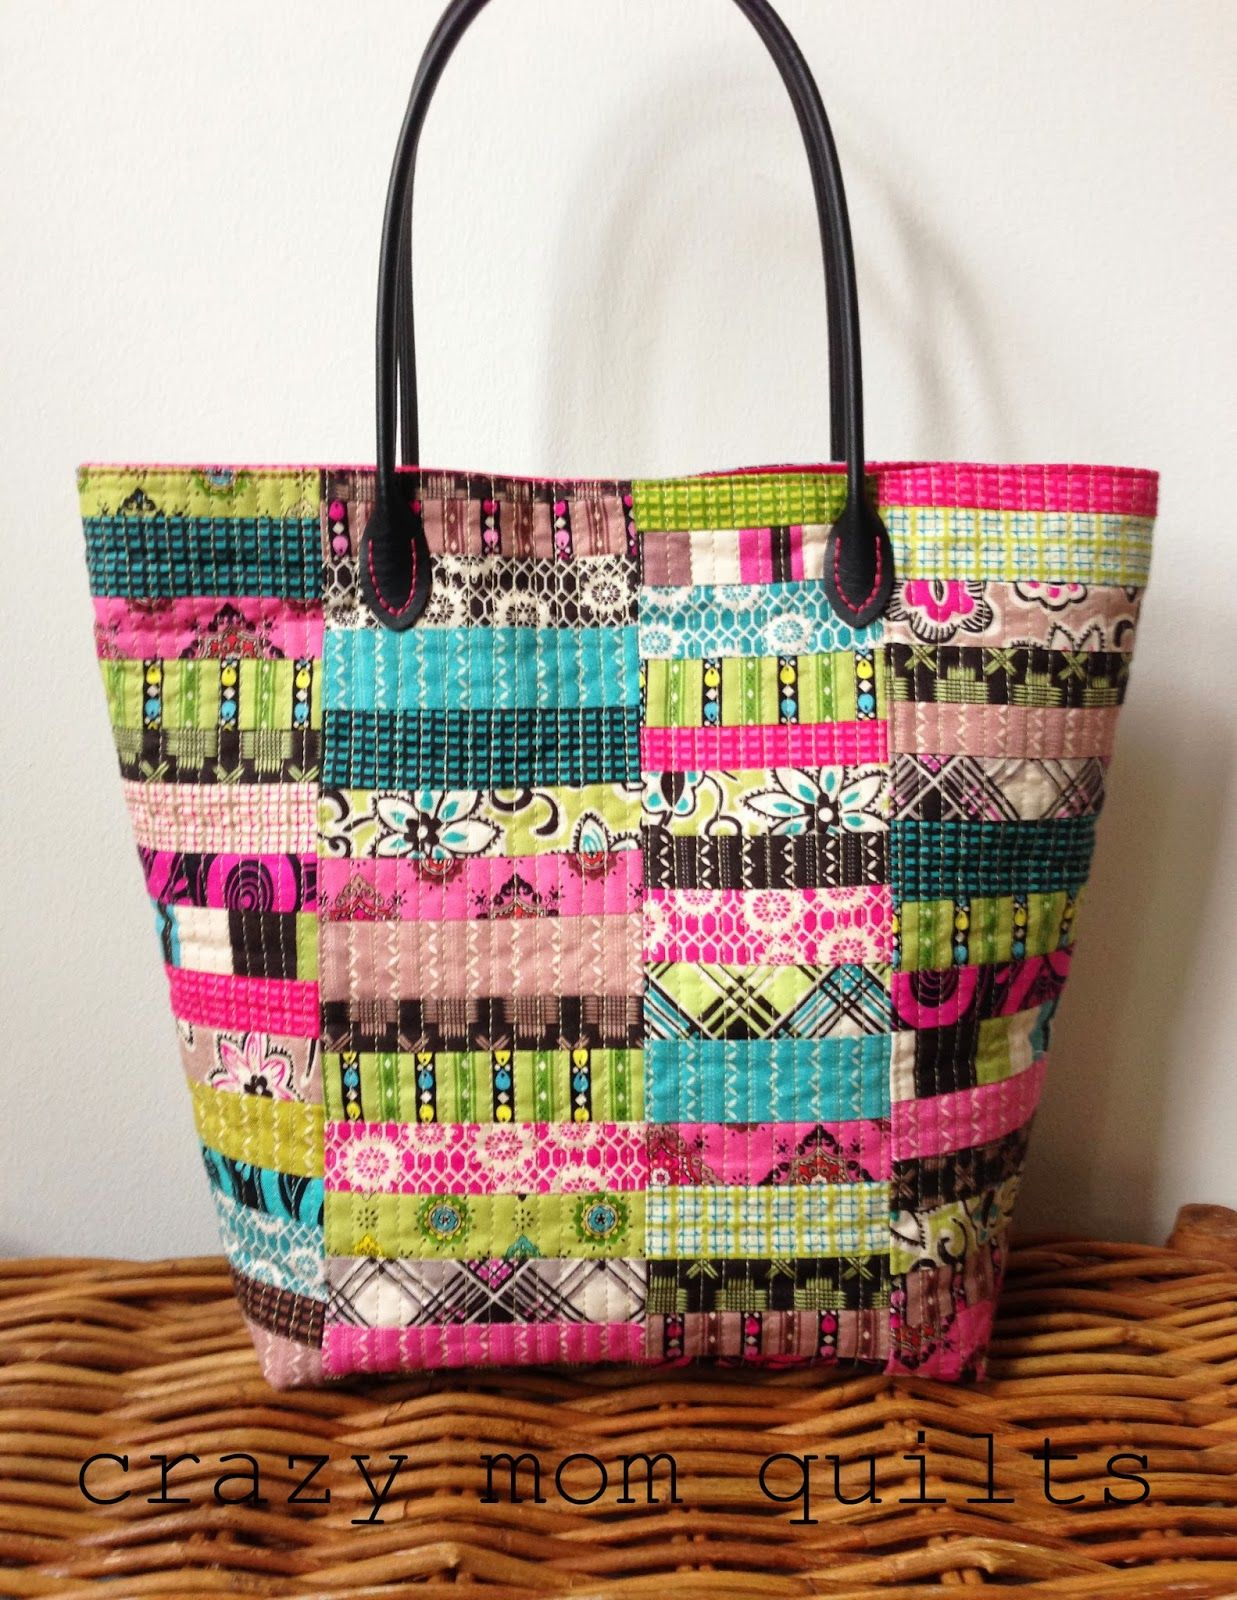 crazy mom quilts: by request | Quilted bags &purses | Pinterest ... : fabric quilted handbags - Adamdwight.com